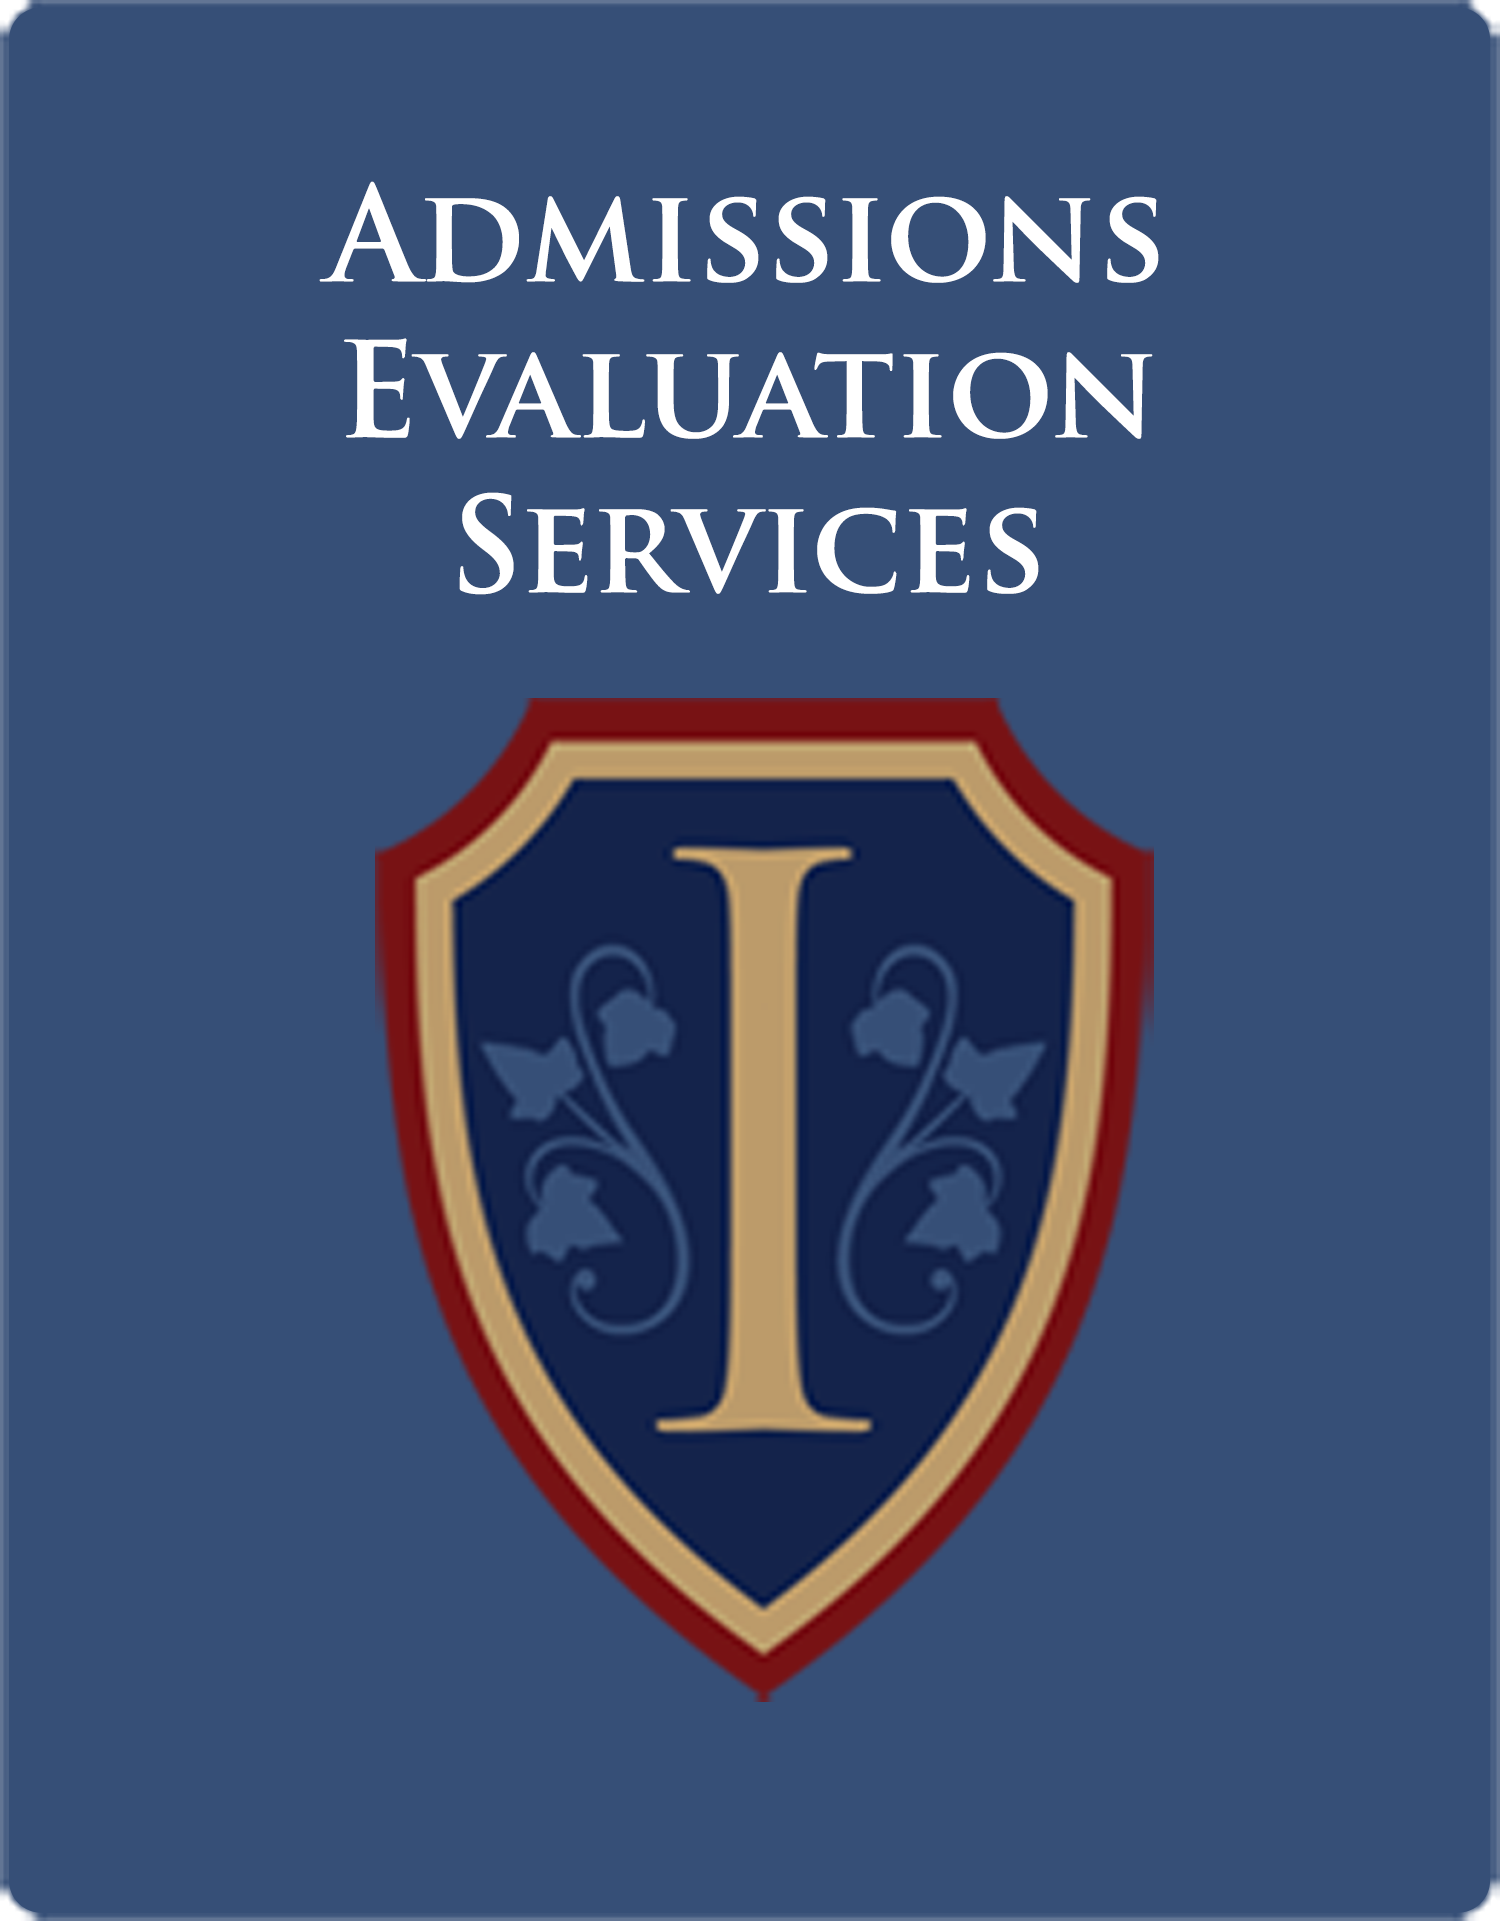 college admissions evaluation services.jpg